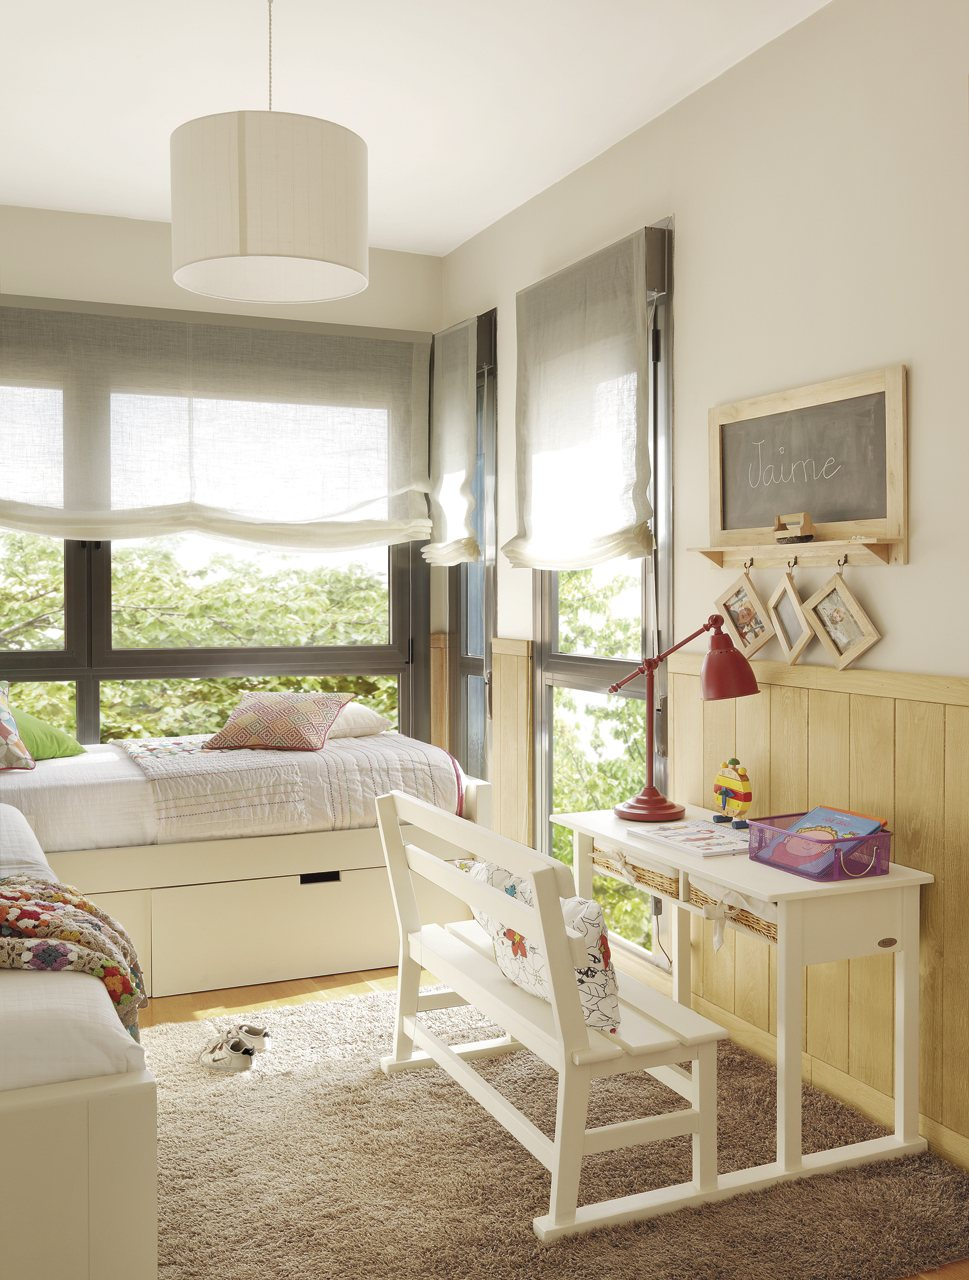 Ideas creativas para decorar un cuarto infantil - Decorar paredes dormitorio juvenil ...